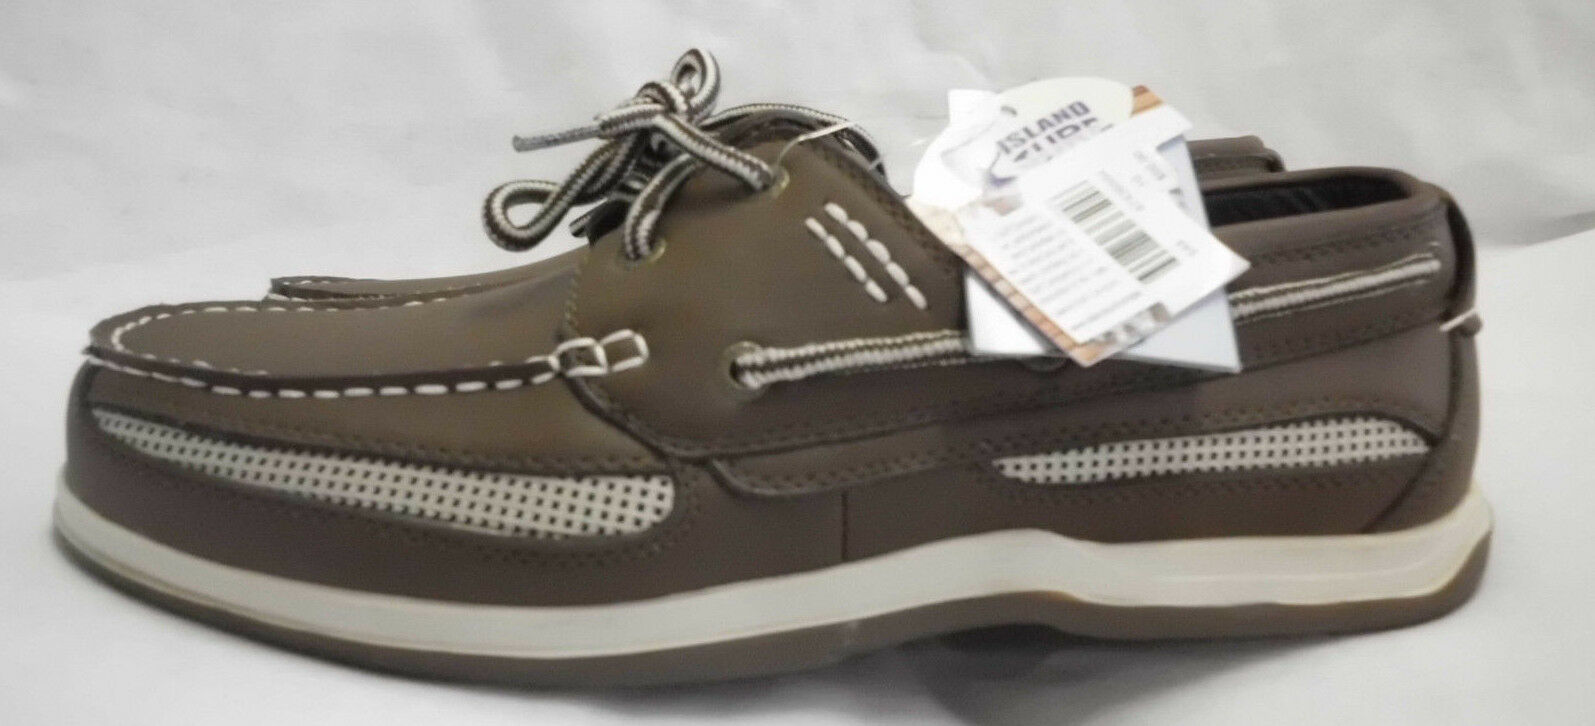 Boat shoes Island Surf Size 10M NWT Synthetic Water Resistant Brown W White